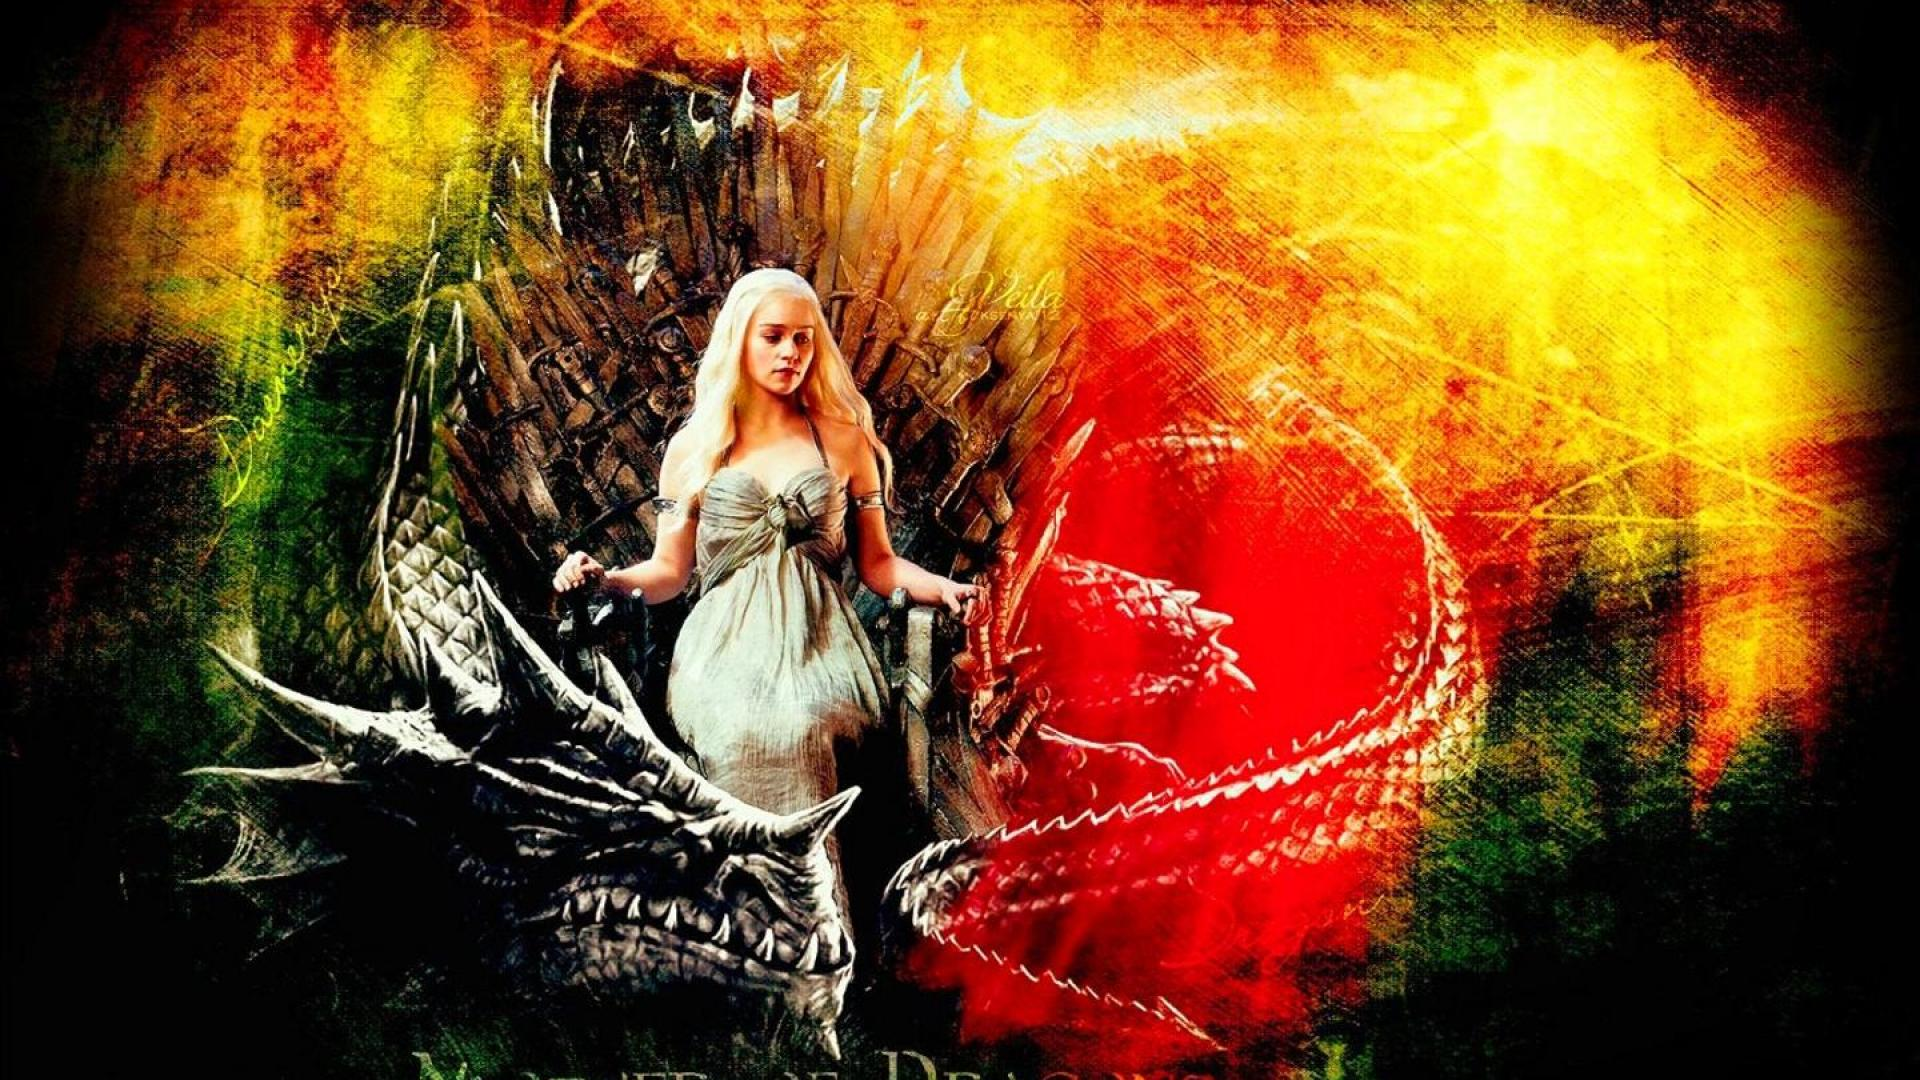 Game of Thrones Mother of Dragons   Wallpaper High Definition High 1920x1080